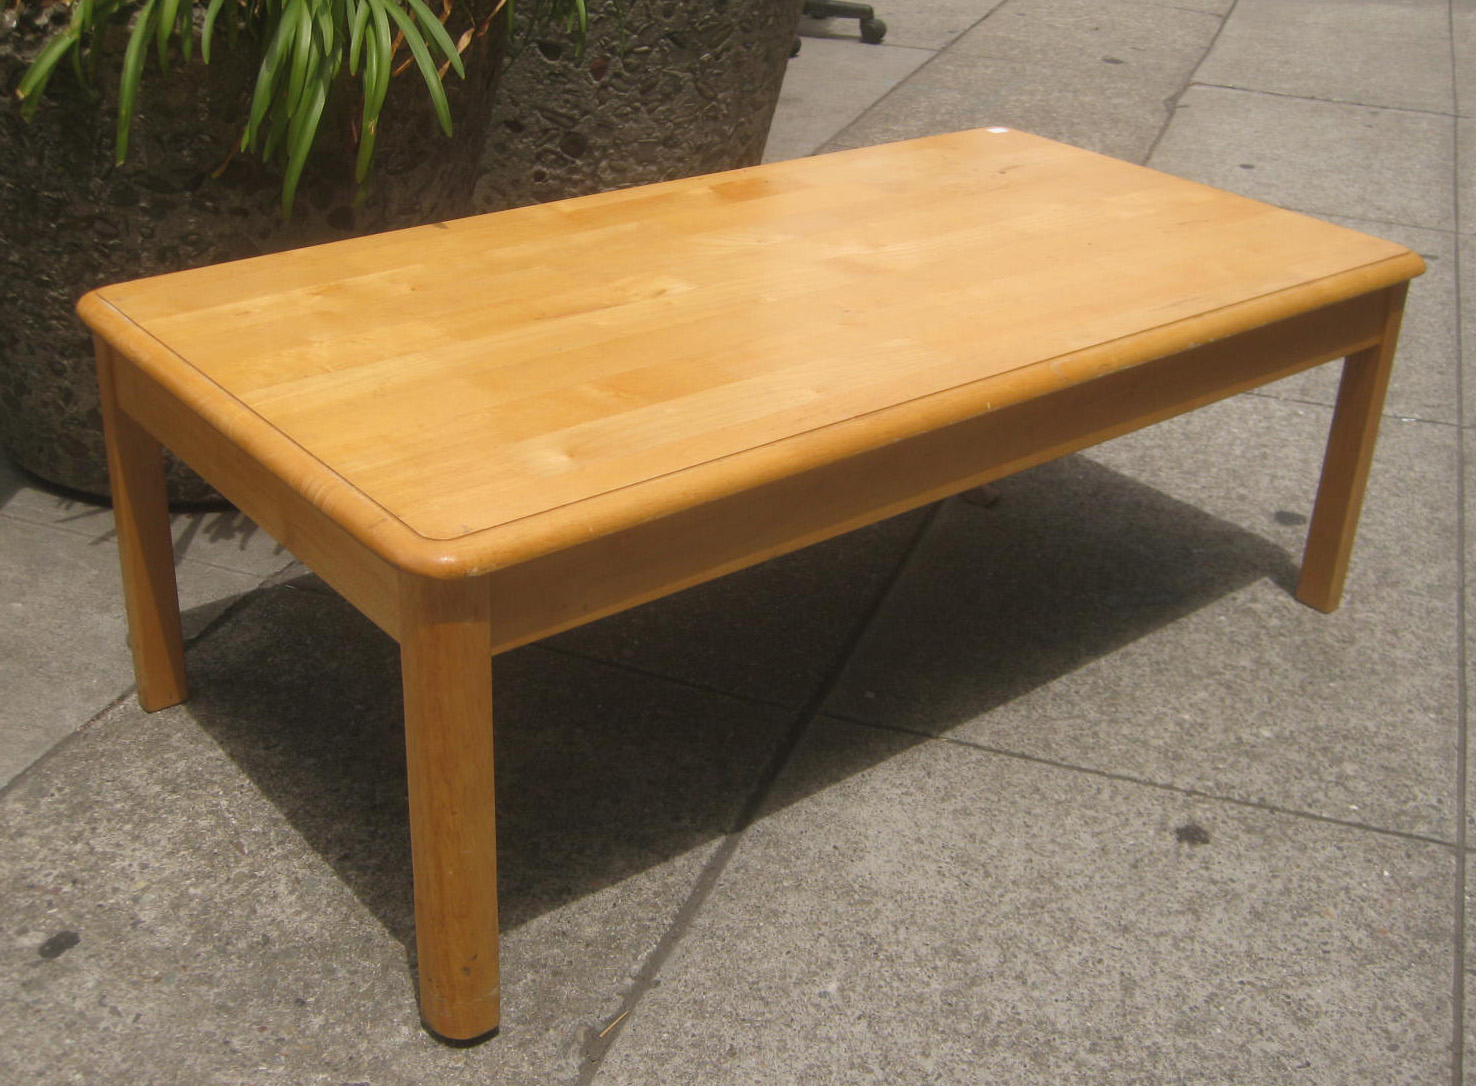 Uhuru Furniture Collectibles Sold Ash Coffee Table 35